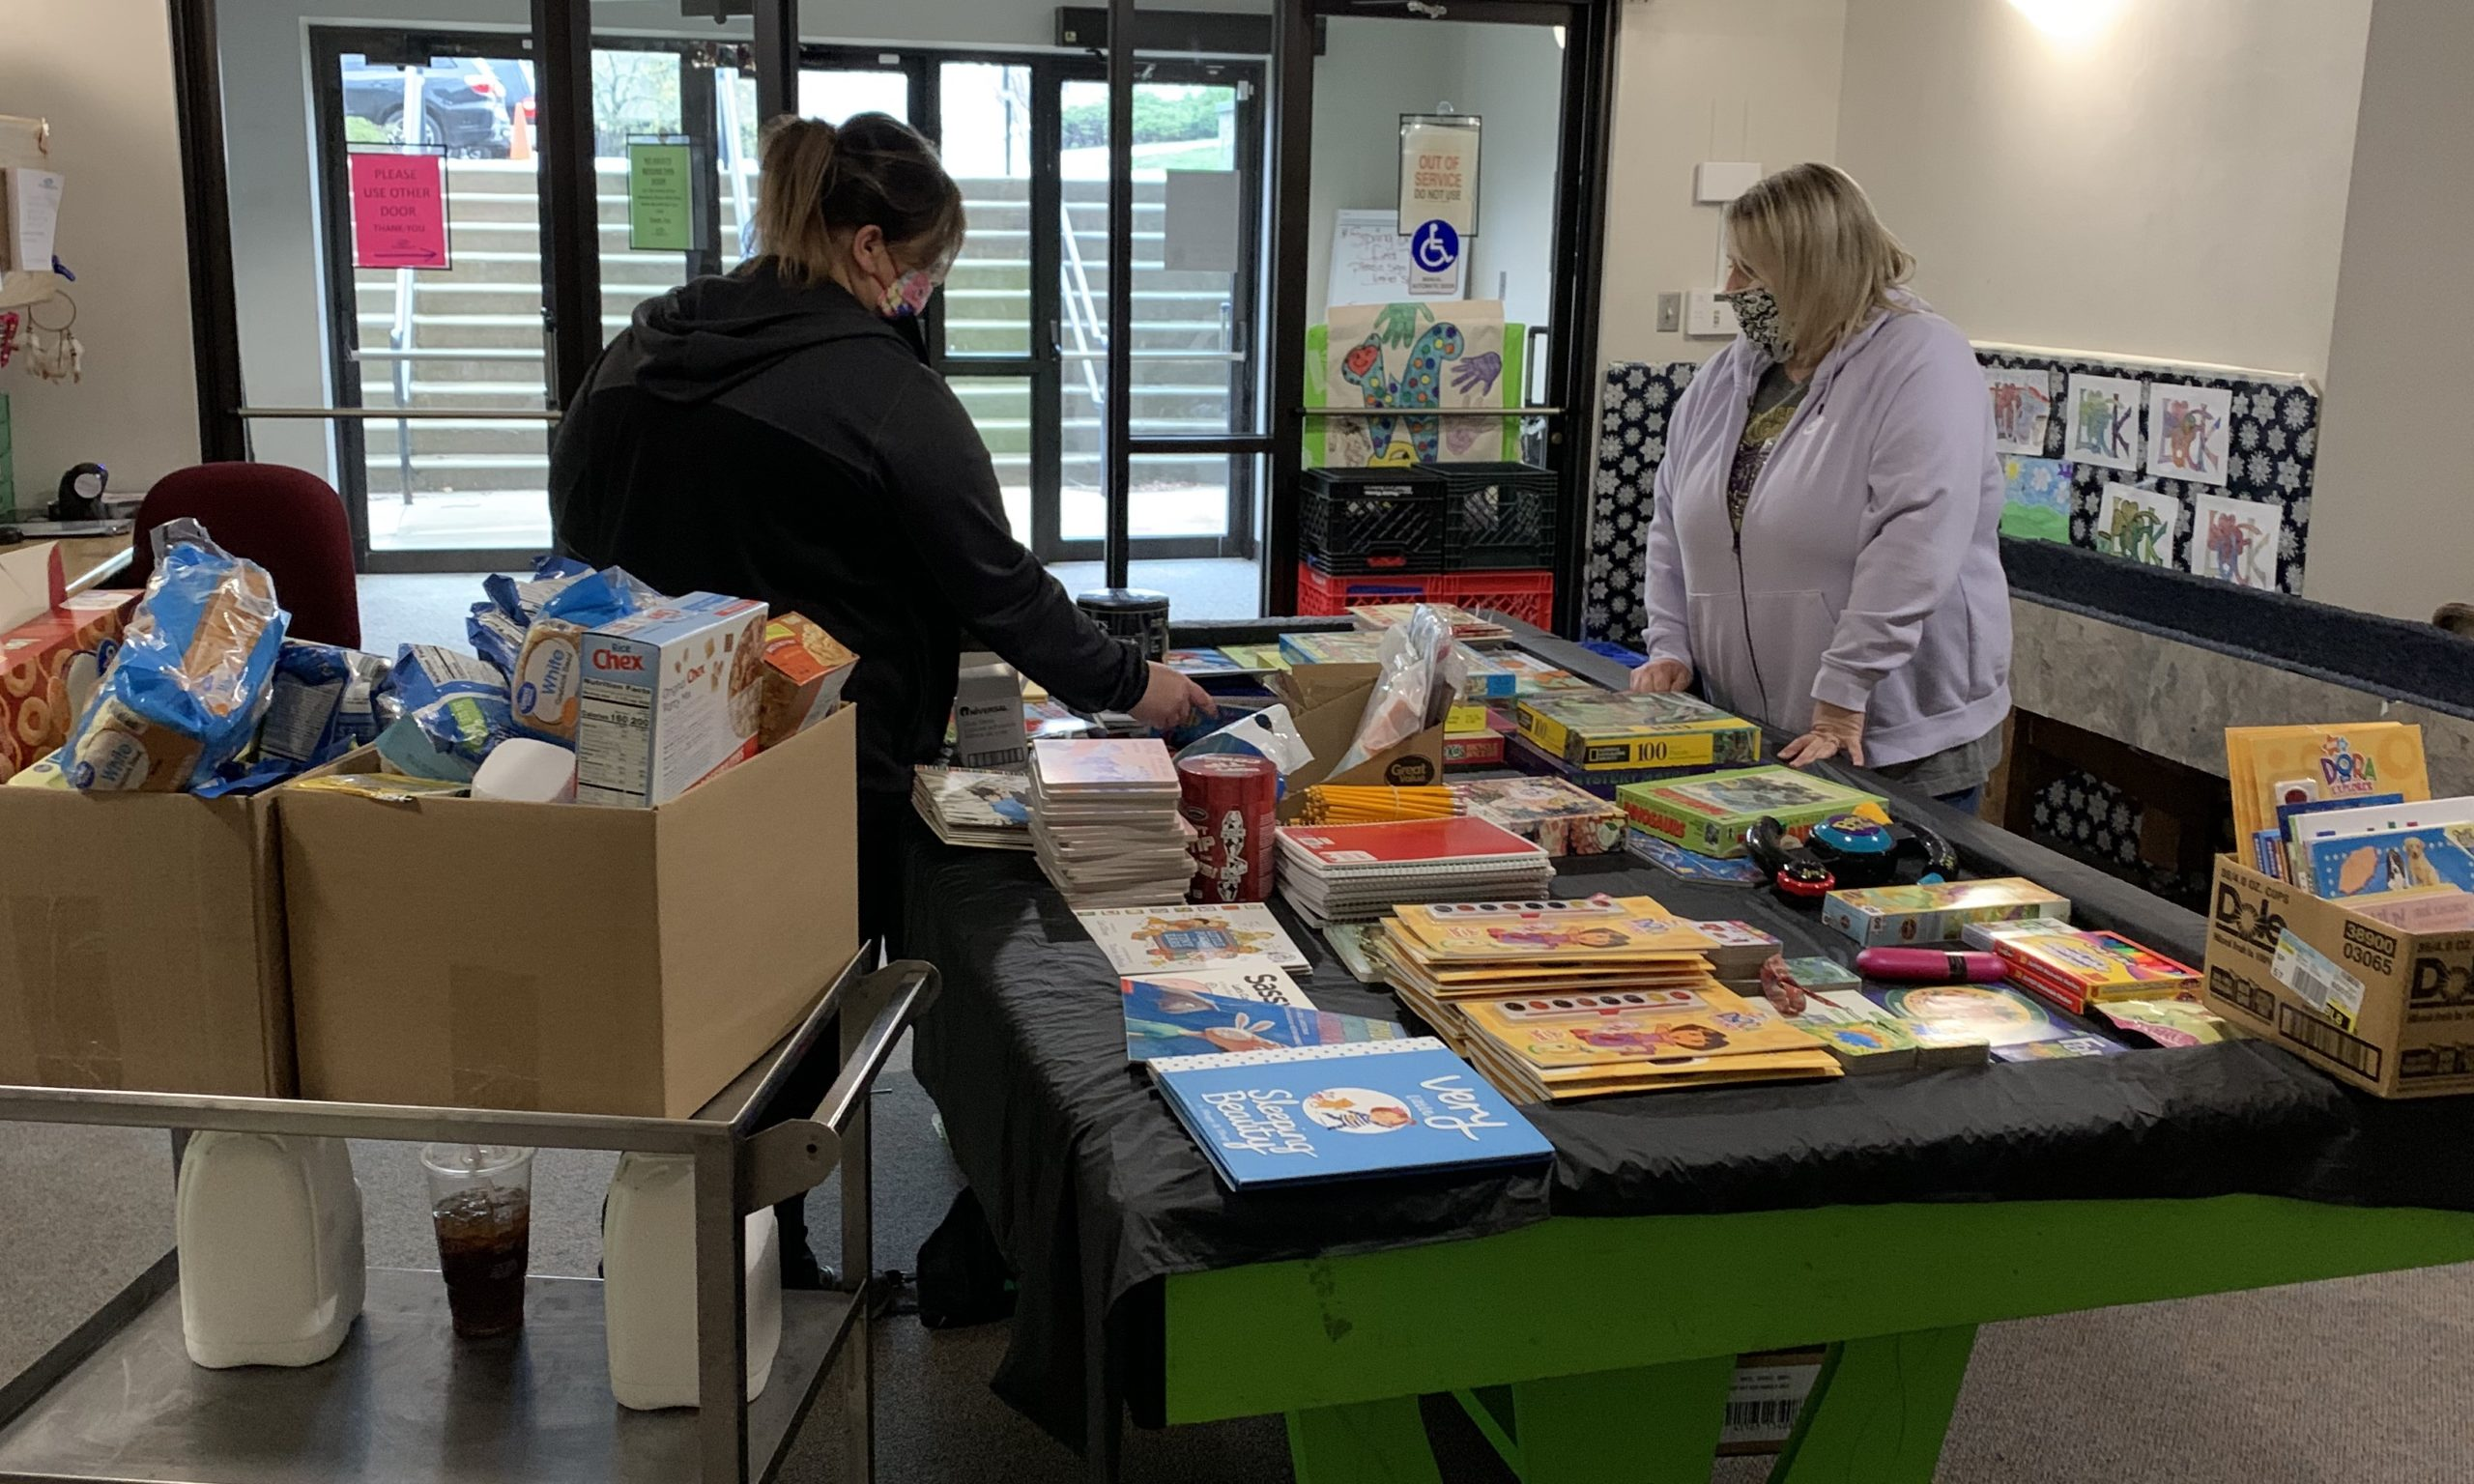 CIS staff organize books and supplies donated for kids during the COVID-19 pandemic.